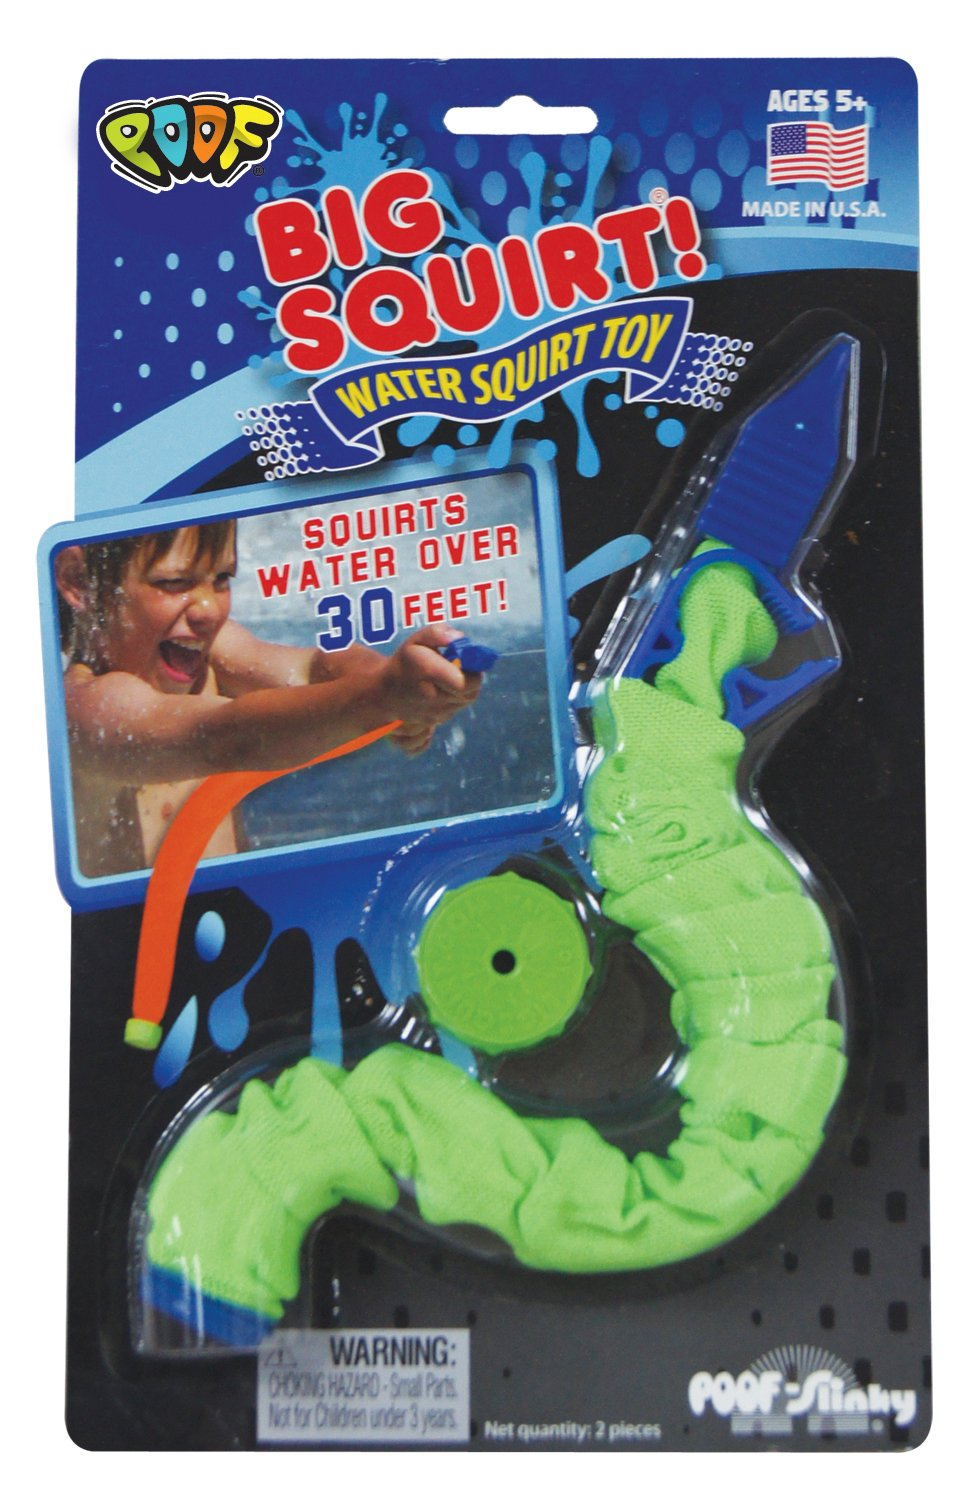 endless squirt